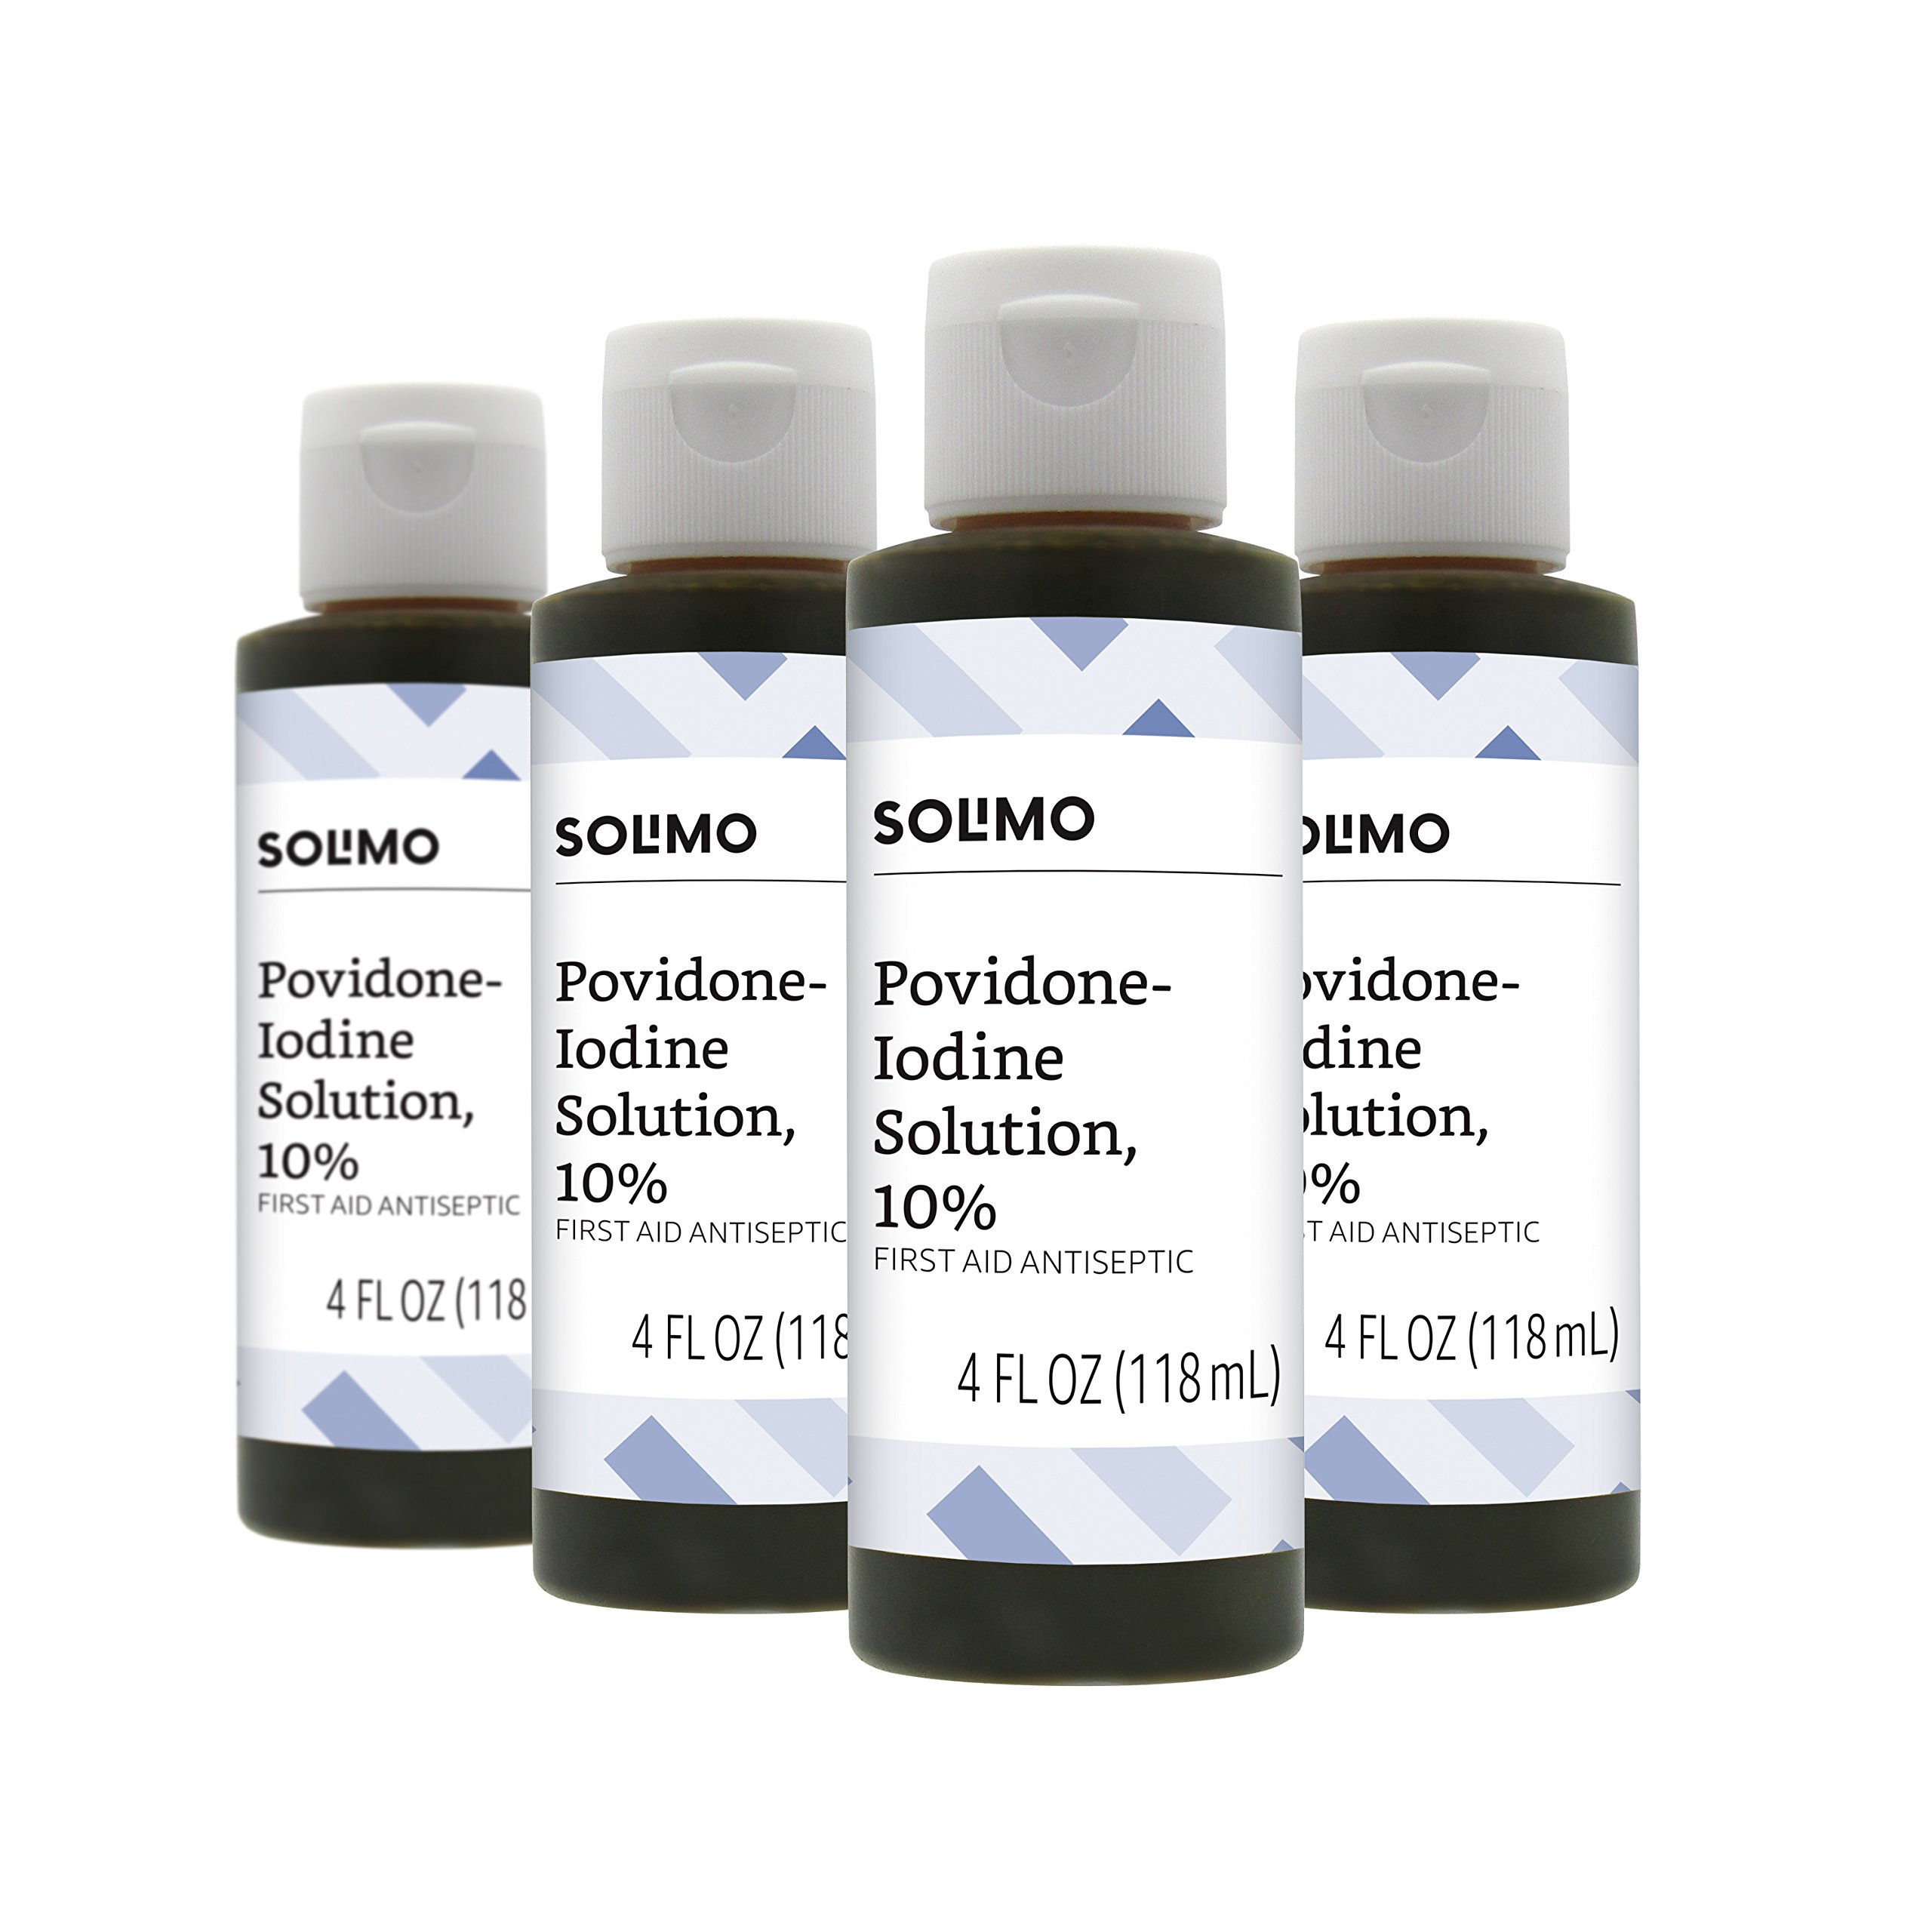 Amazon Brand - Solimo 10% Povidone Iodine Solution First Aid Antiseptic, 4 Fluid Ounce (Pack of 4)